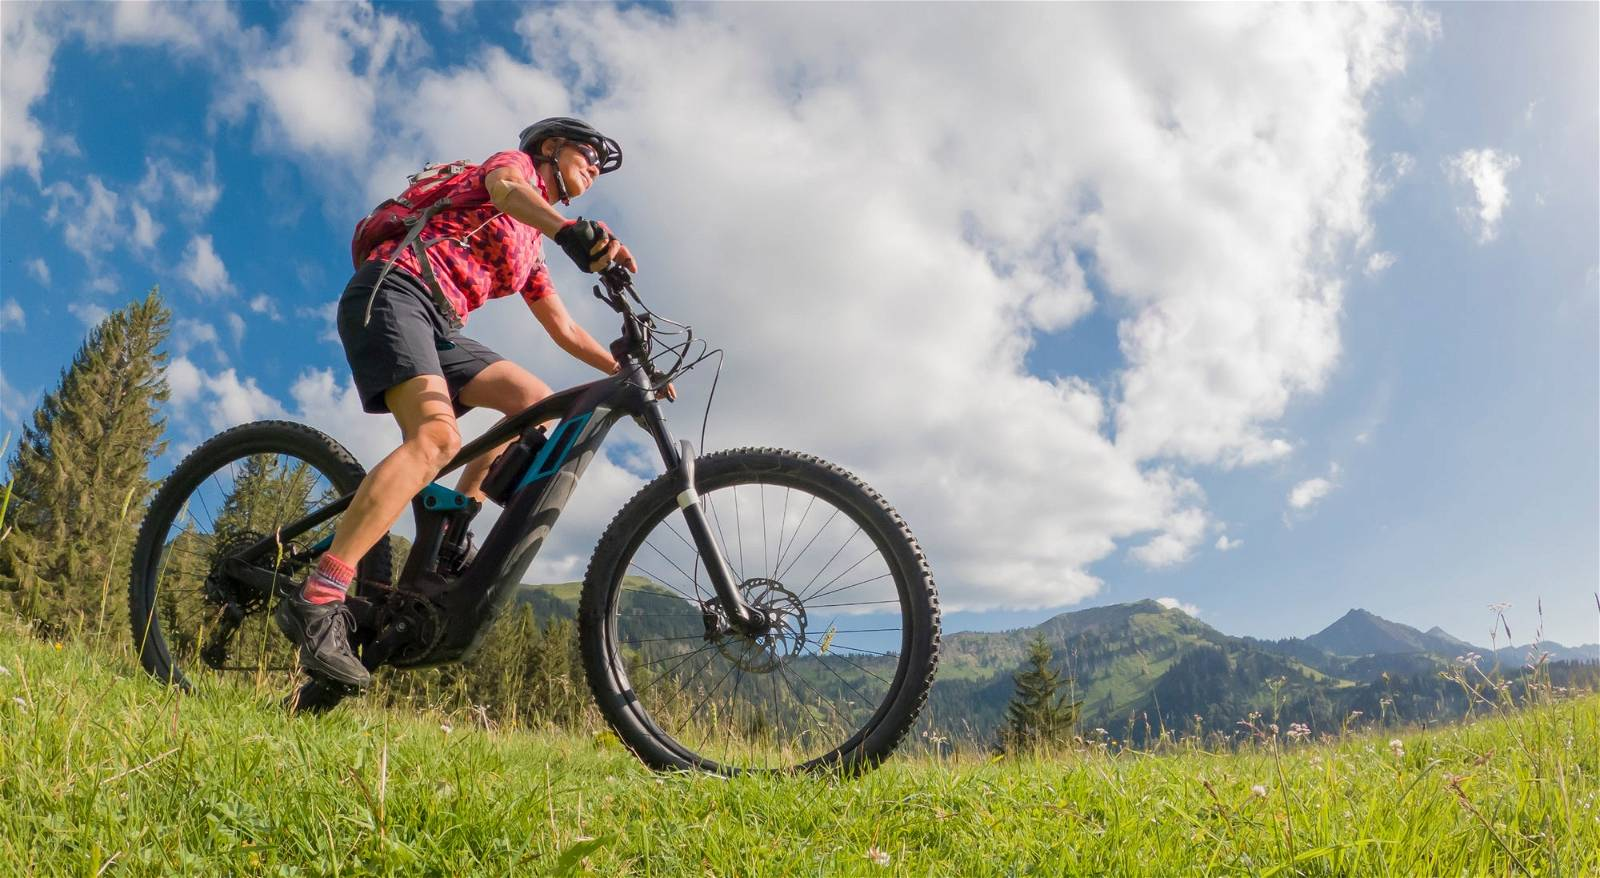 Why Are Electric Mountain Bikes Used for Hunting?